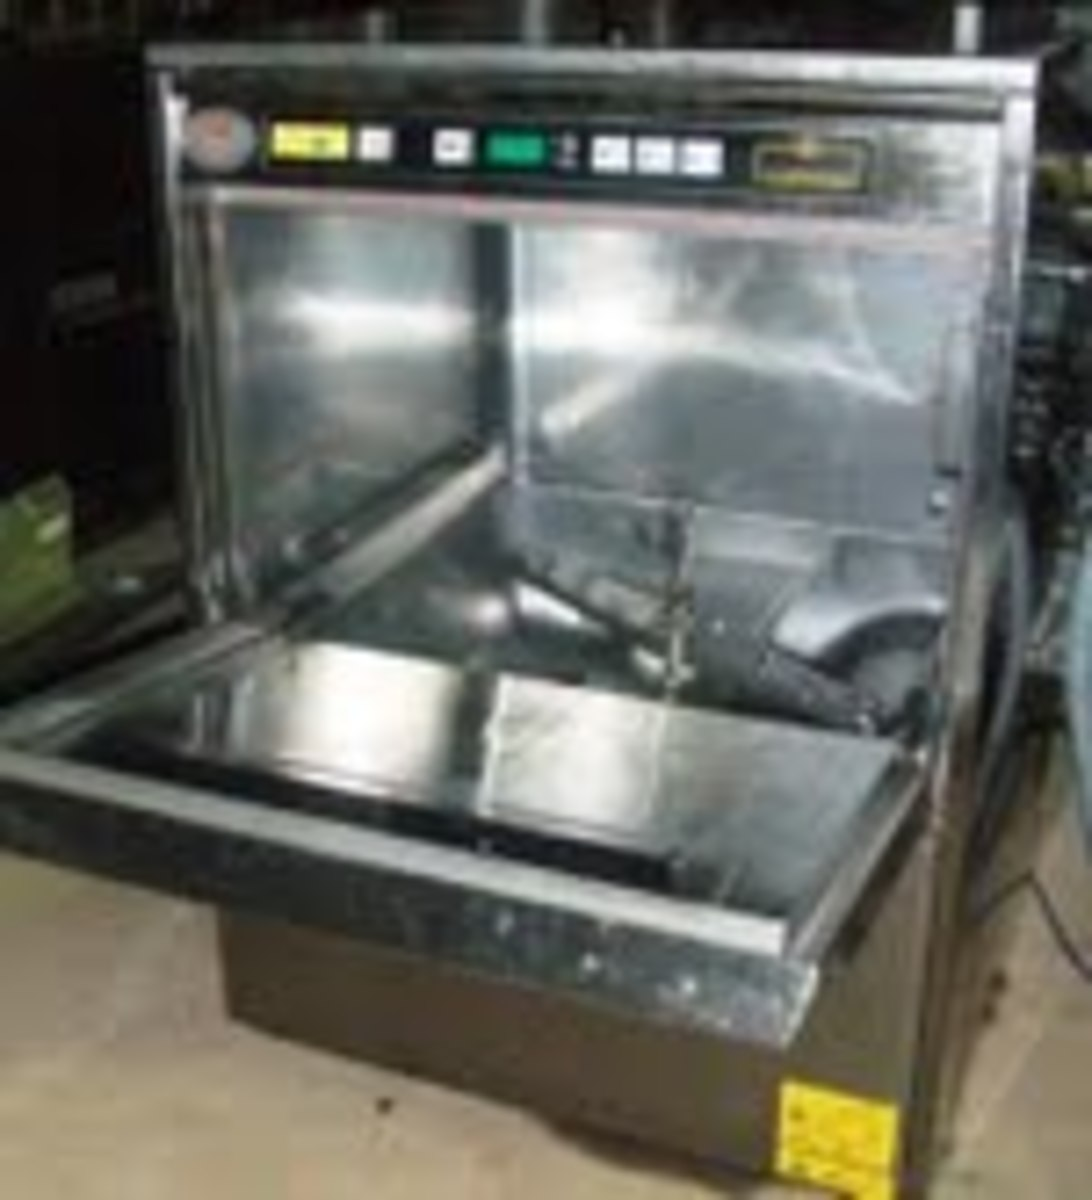 Picture of the dishwasher the conman sent to me